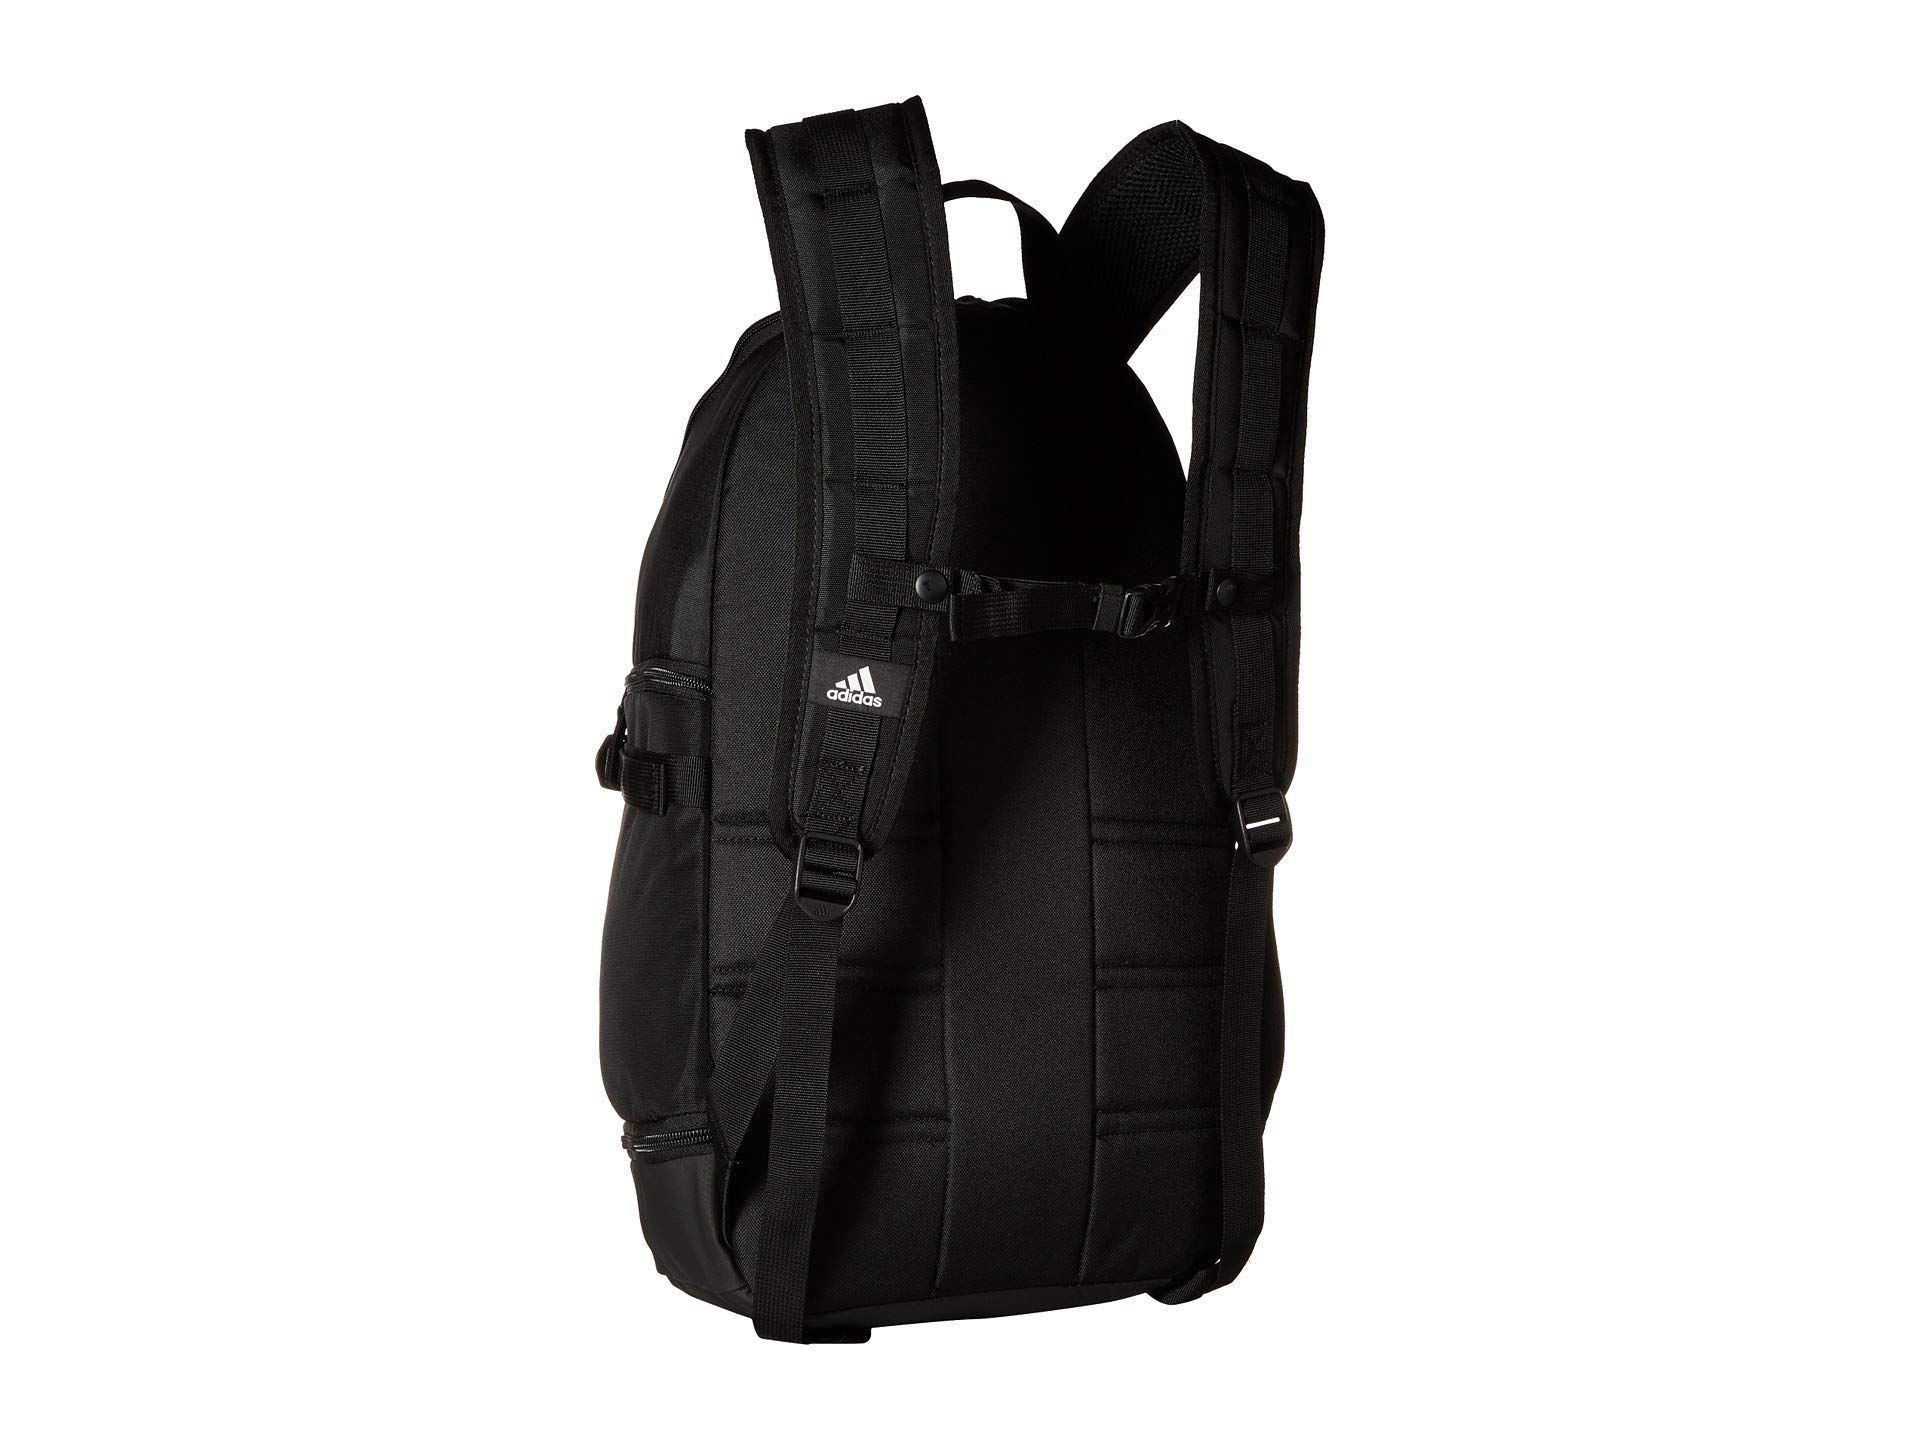 365 Black Backpack Adidas Creator Basketball 7qTx5S